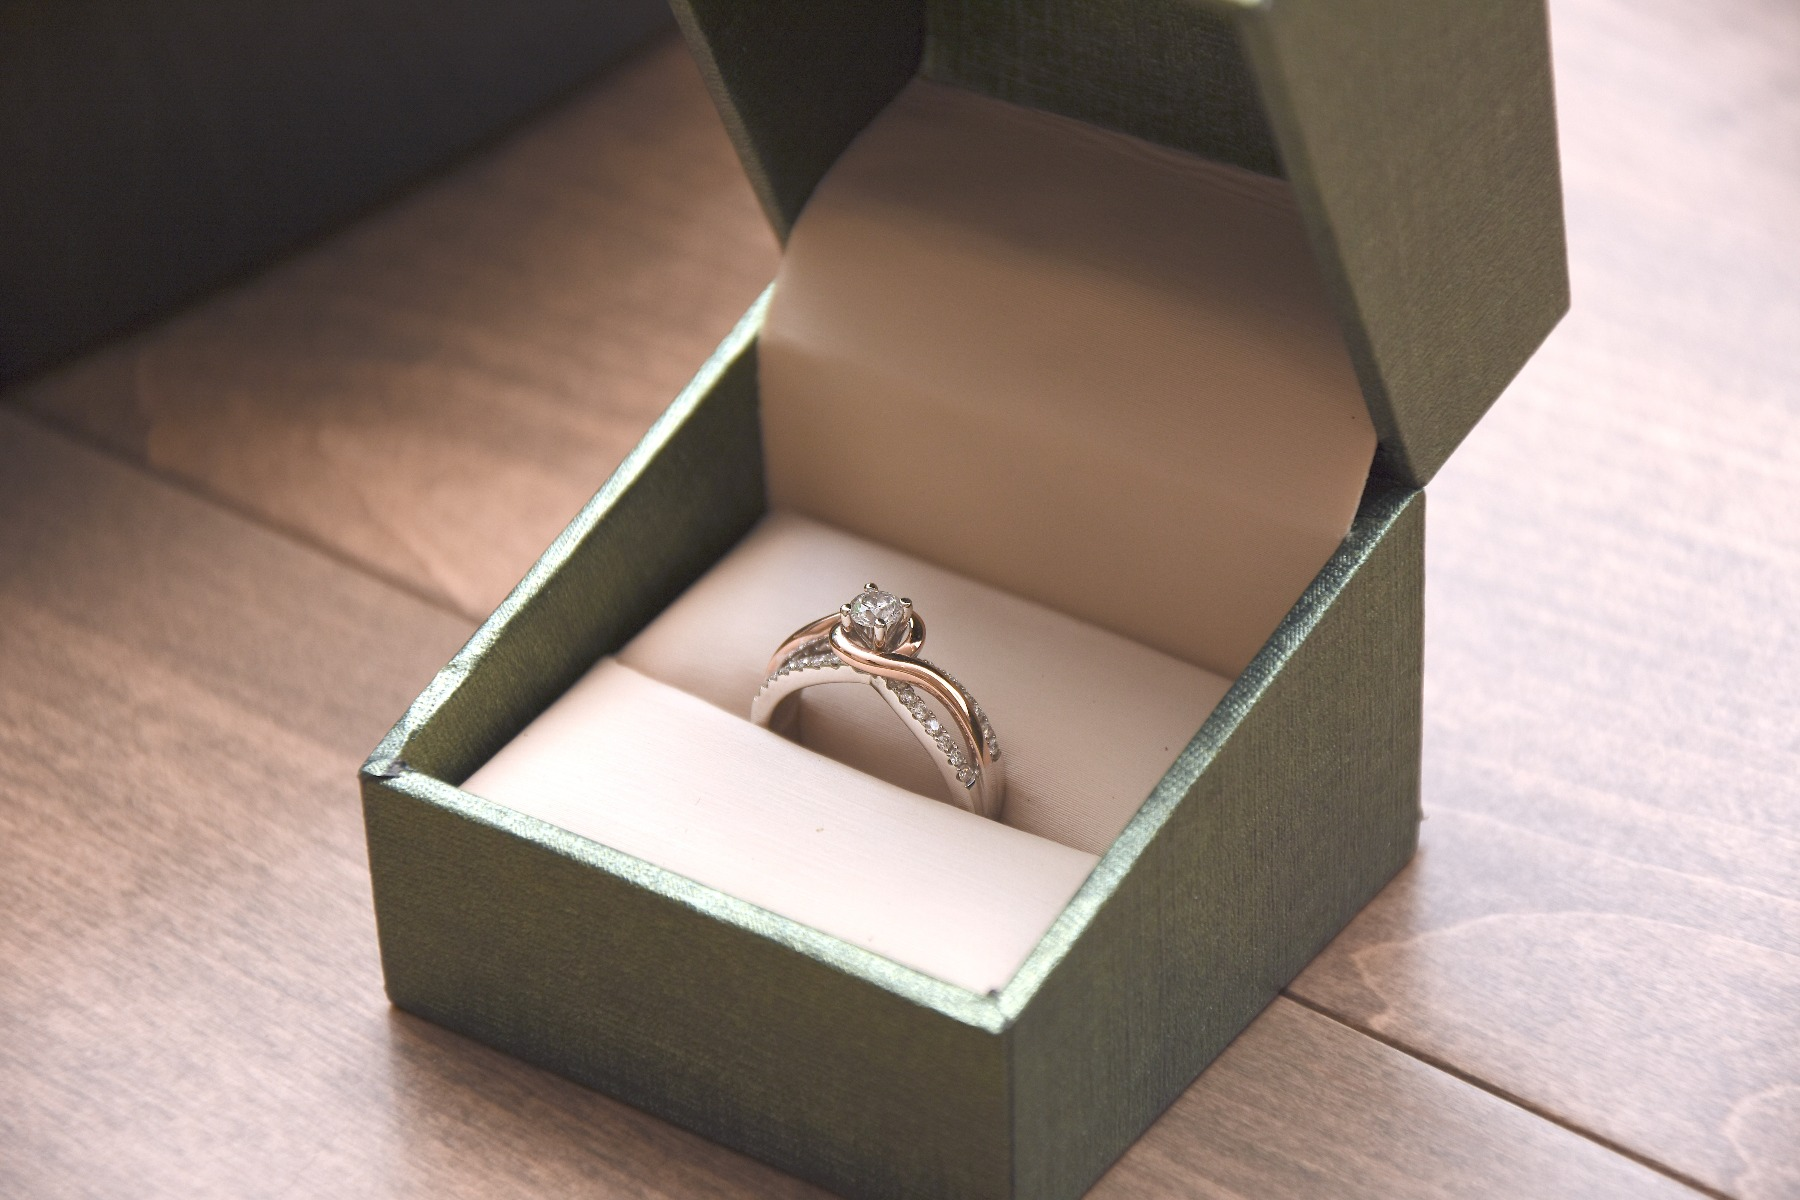 Beautiful engagement ring sitting on a wood table